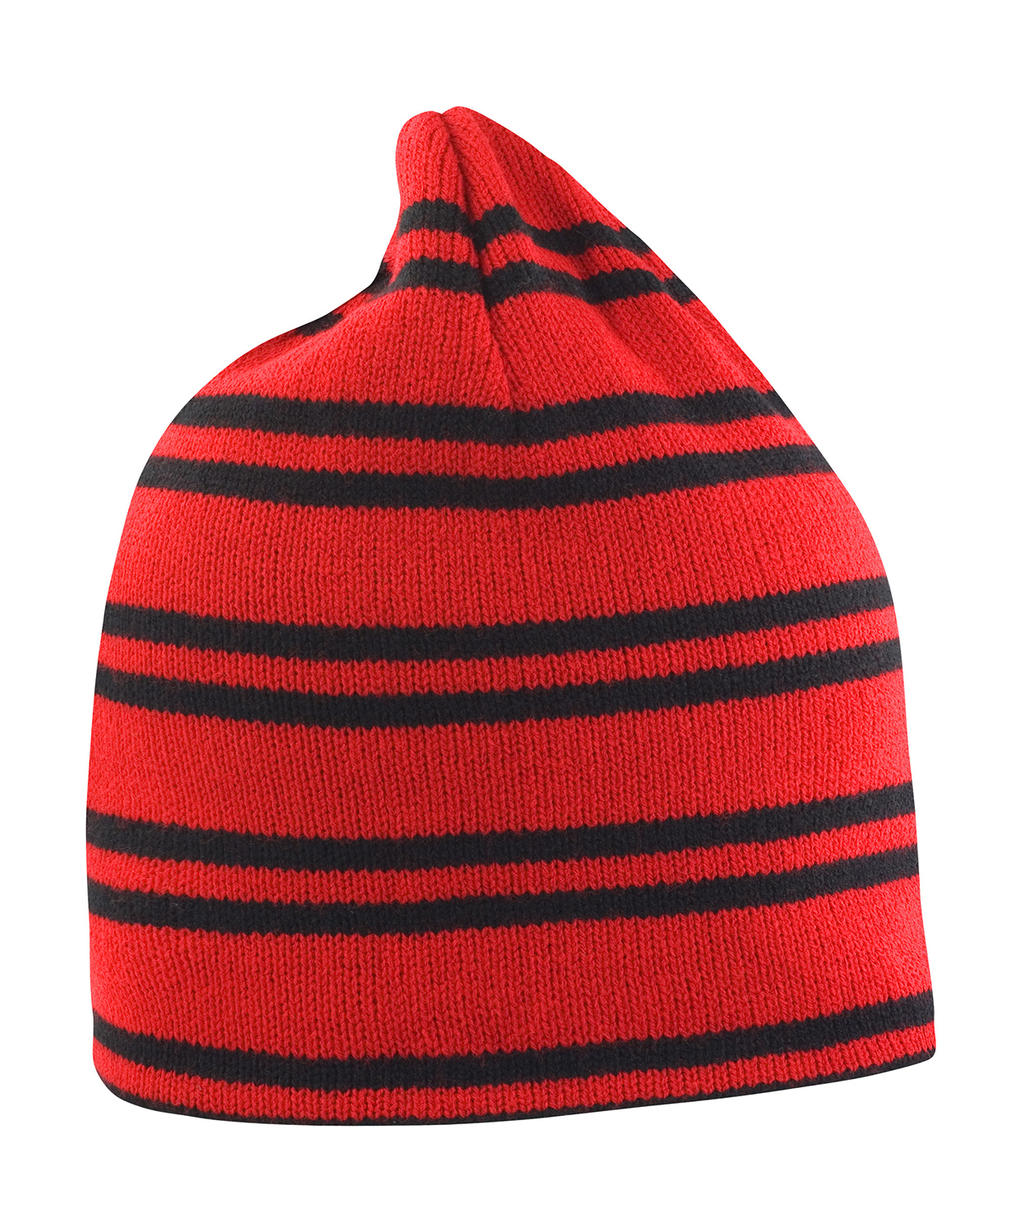 Result Team Reversible Beanie